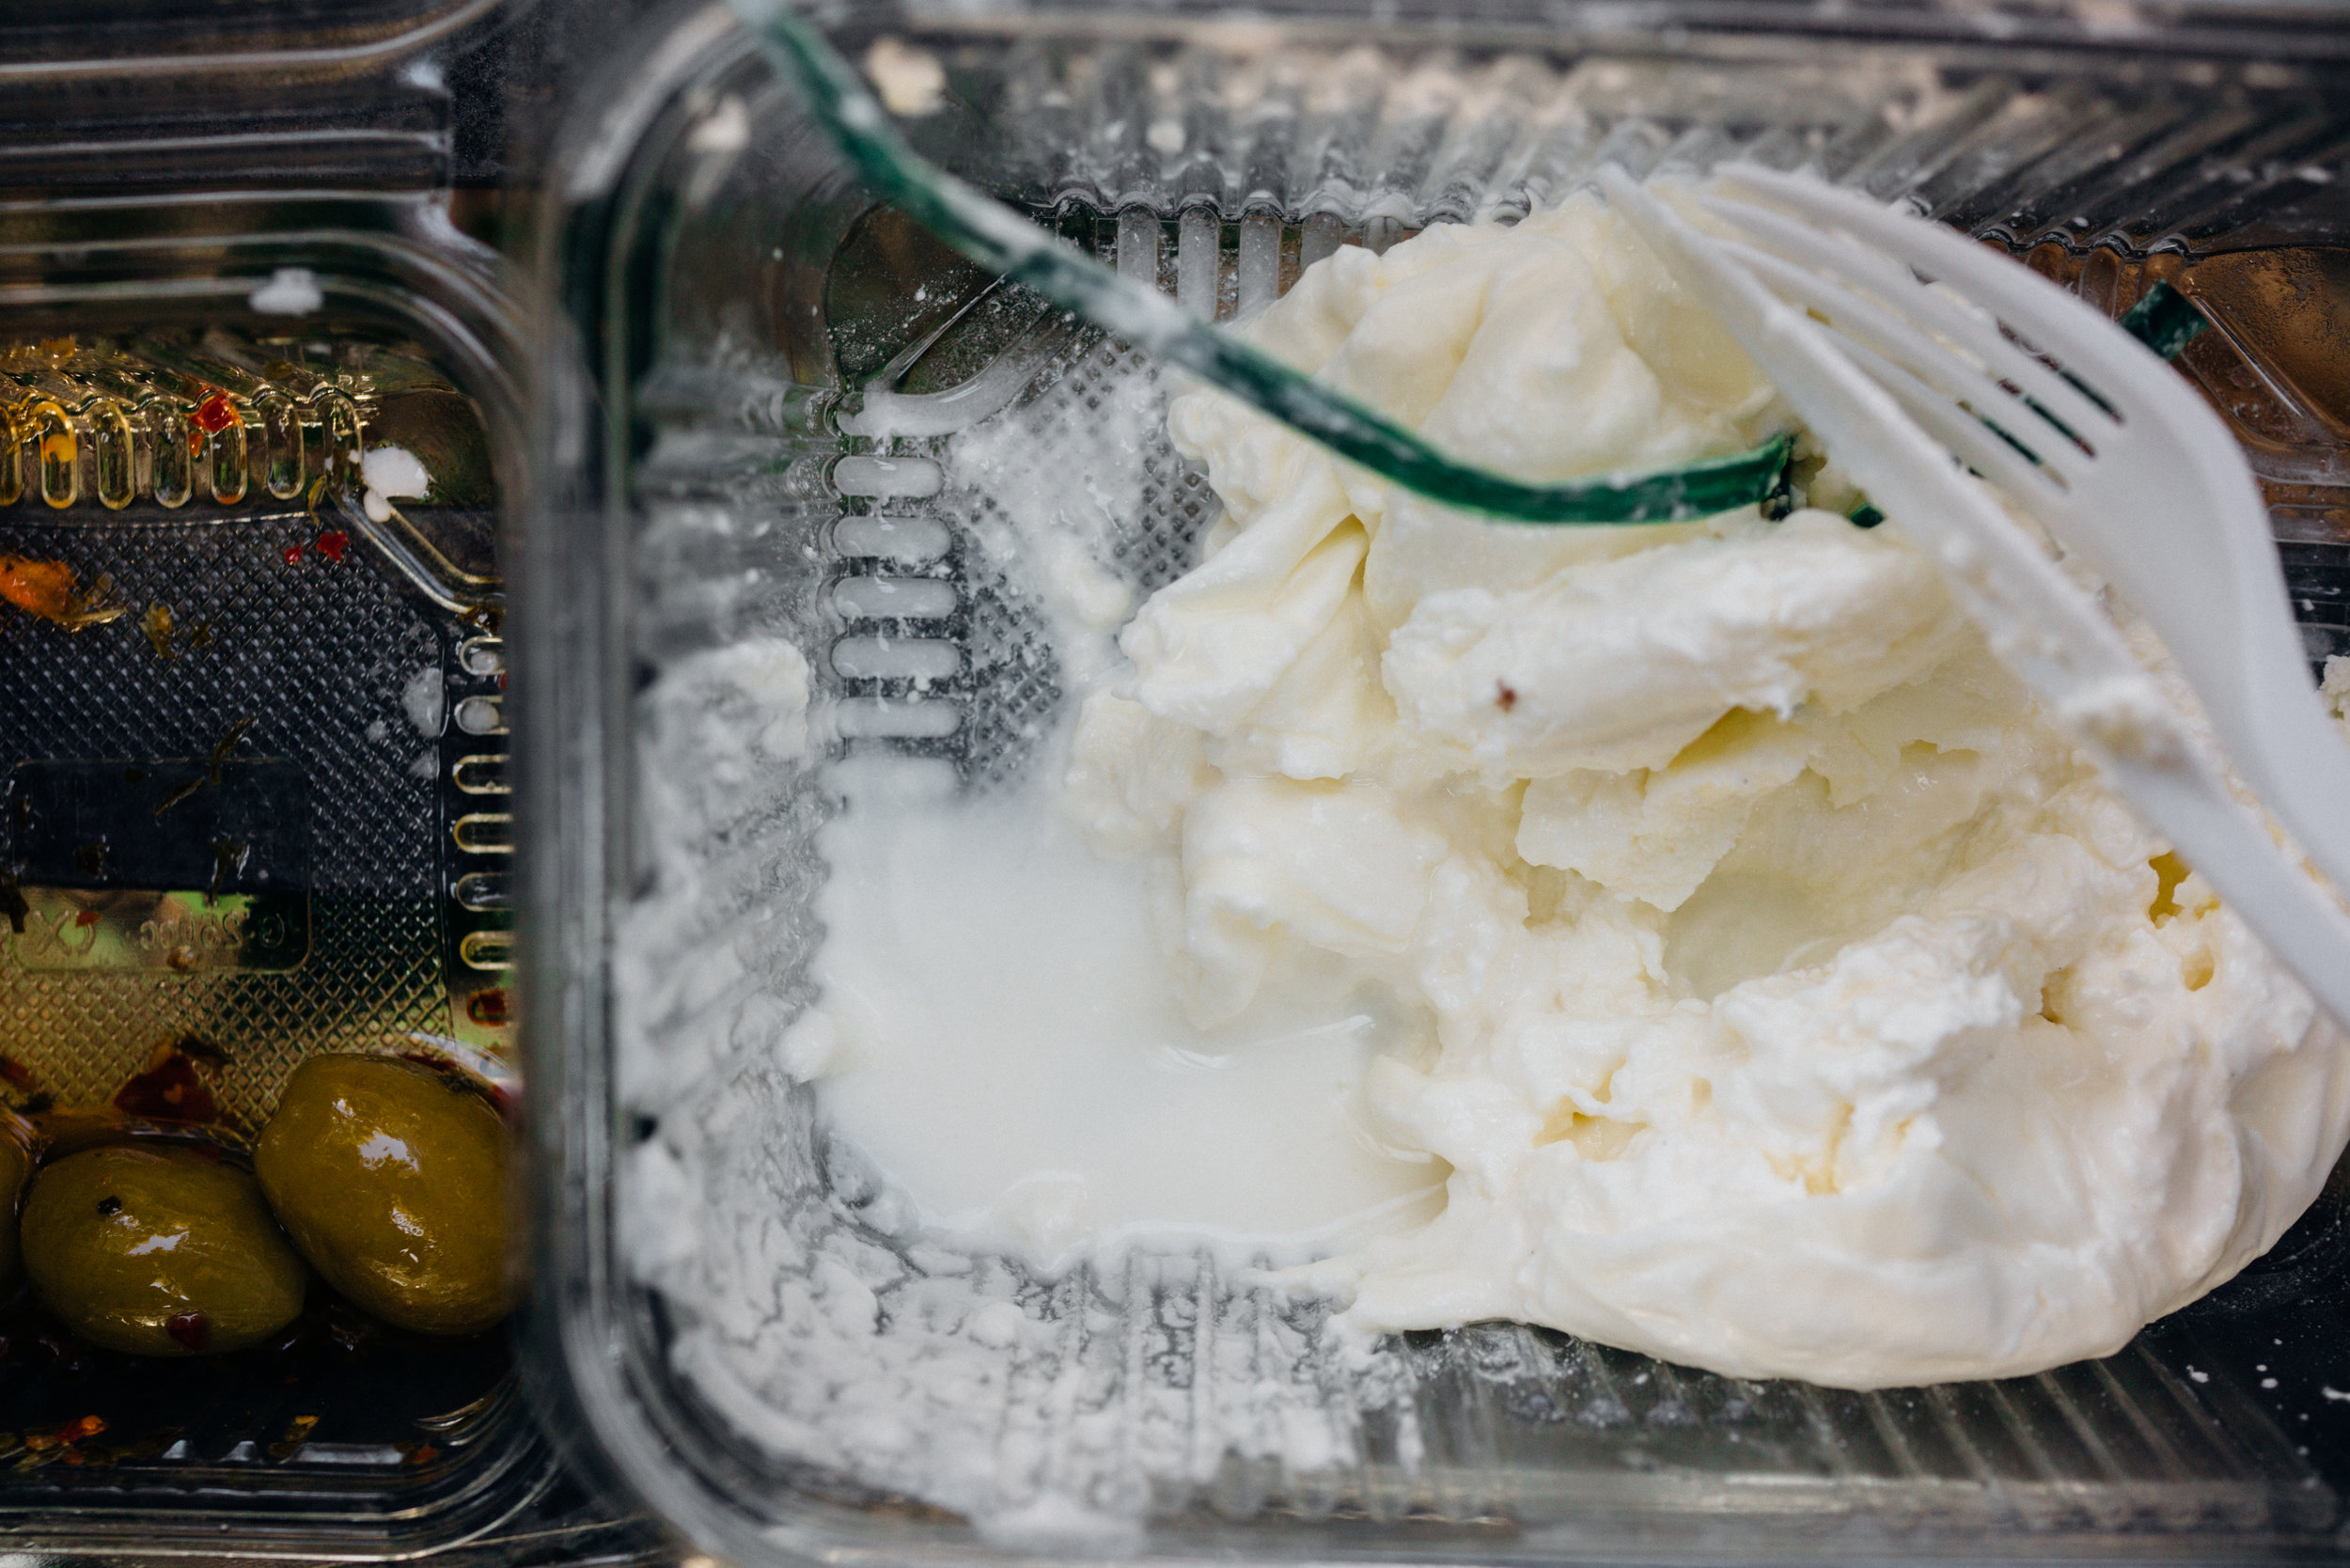 Plain Burrata, consumed at the gardens in Villa Borghese